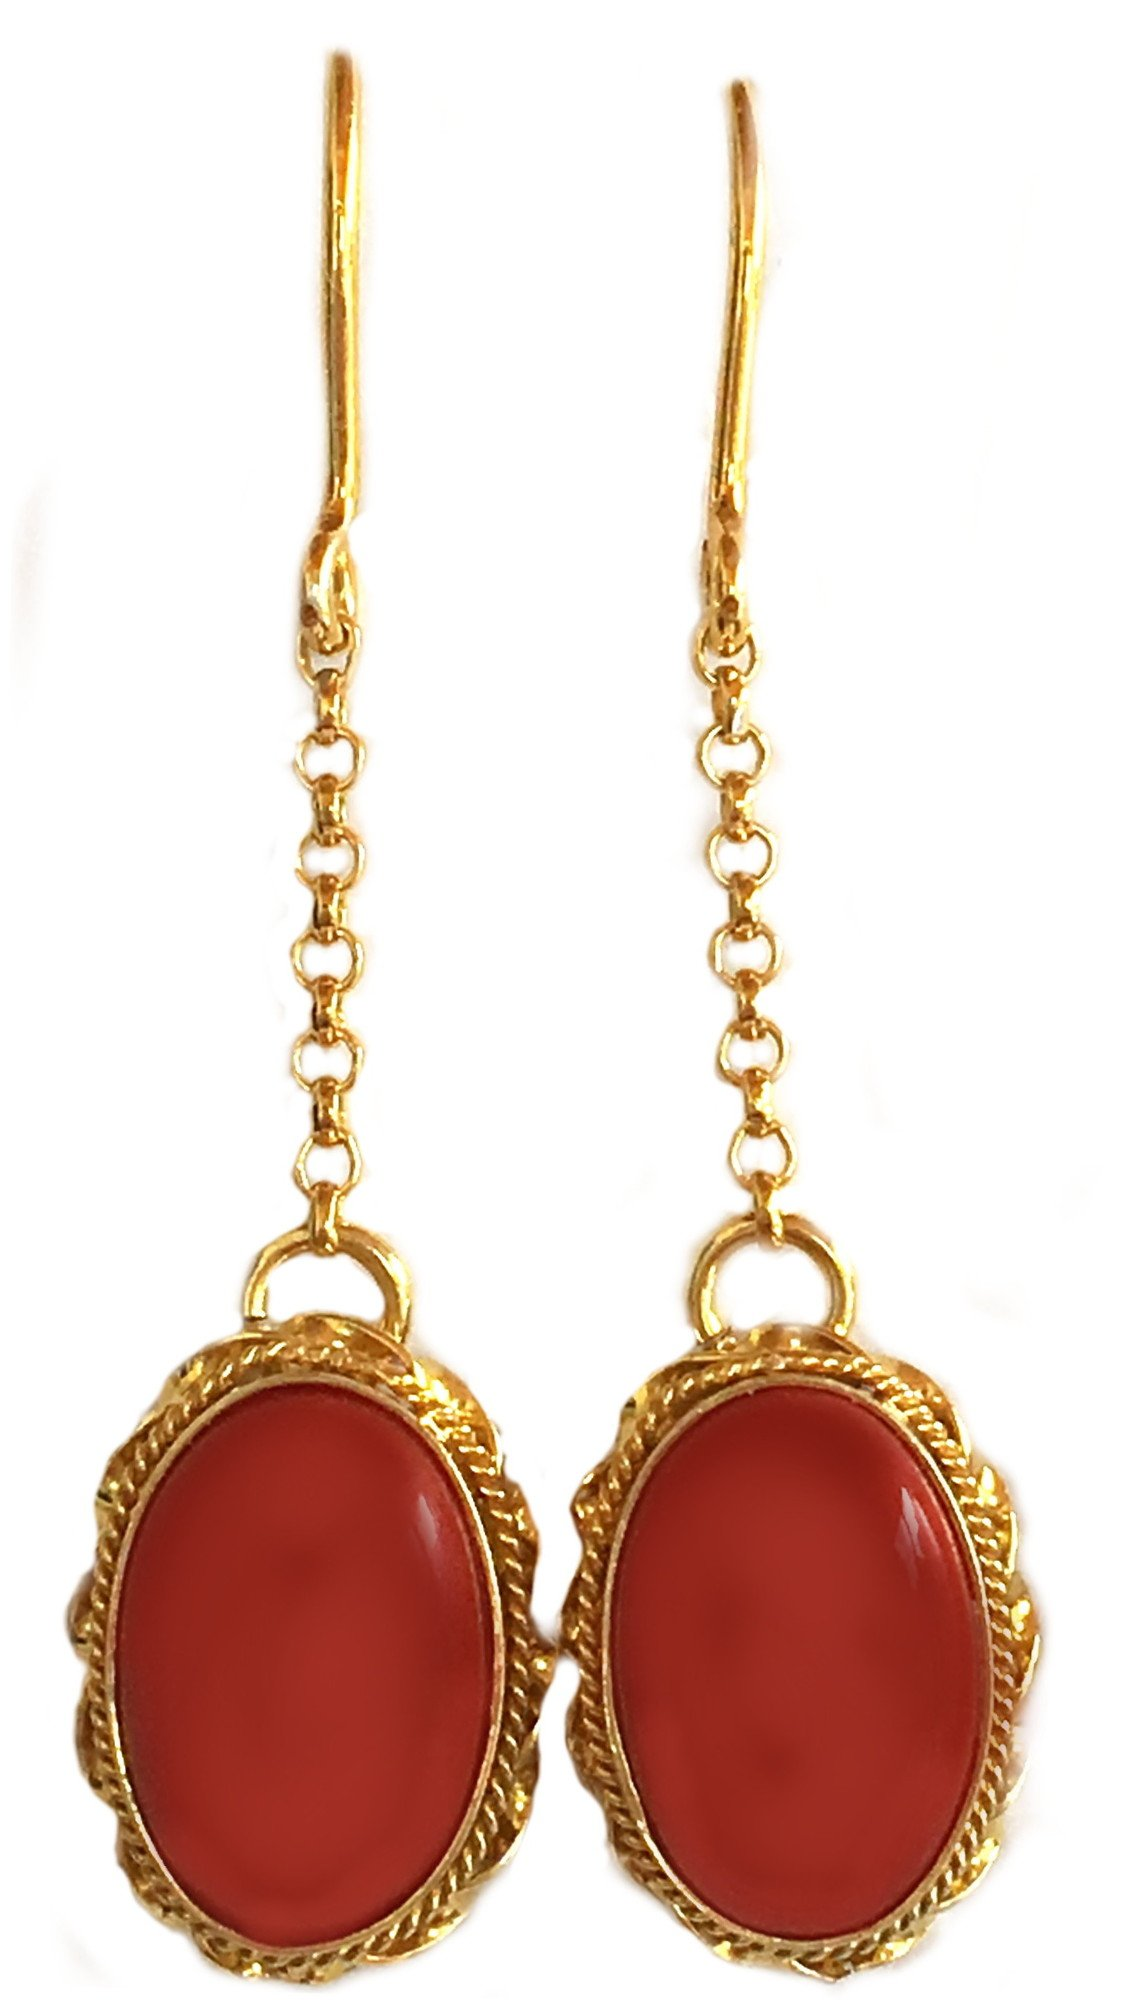 Coral Earrings Summer Dream Natural Mediterranean Coral, French Wire, 925 Sterling Silver 18K Yellow Gold Overlay, Italian